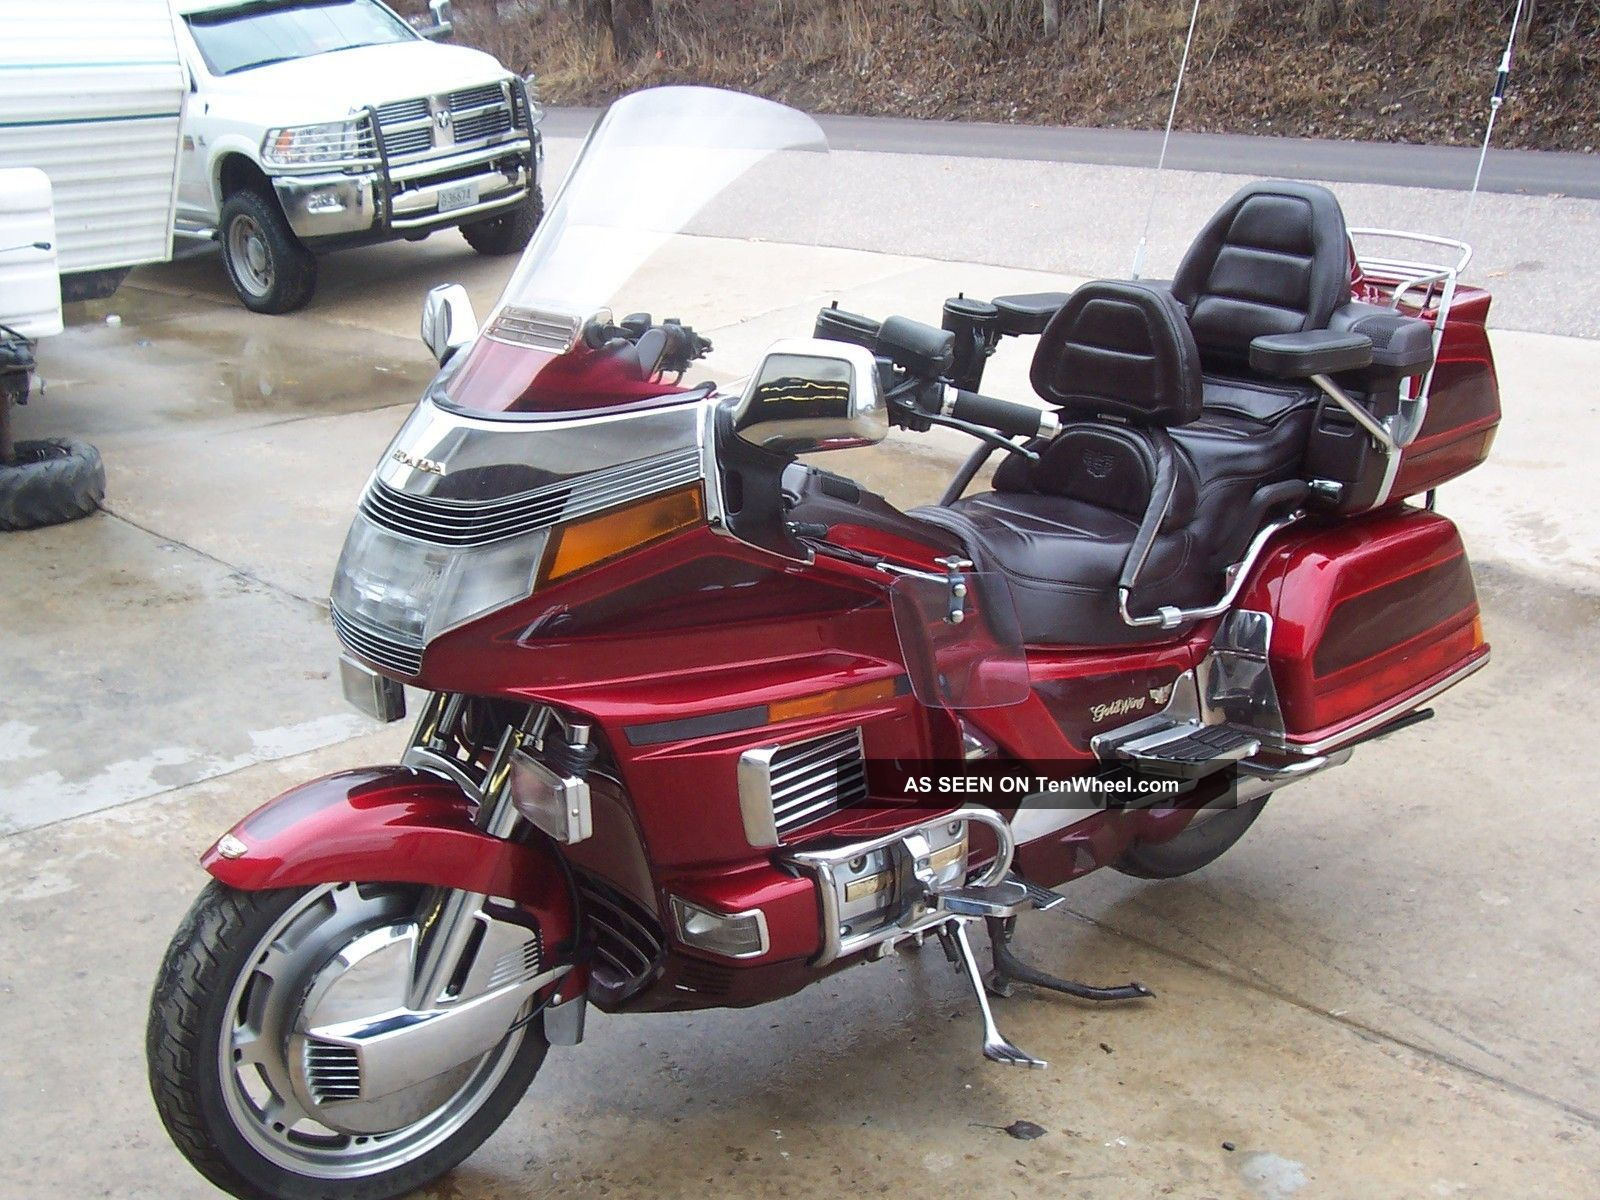 1997 honda gl 1500 se gold wing pics specs and. Black Bedroom Furniture Sets. Home Design Ideas